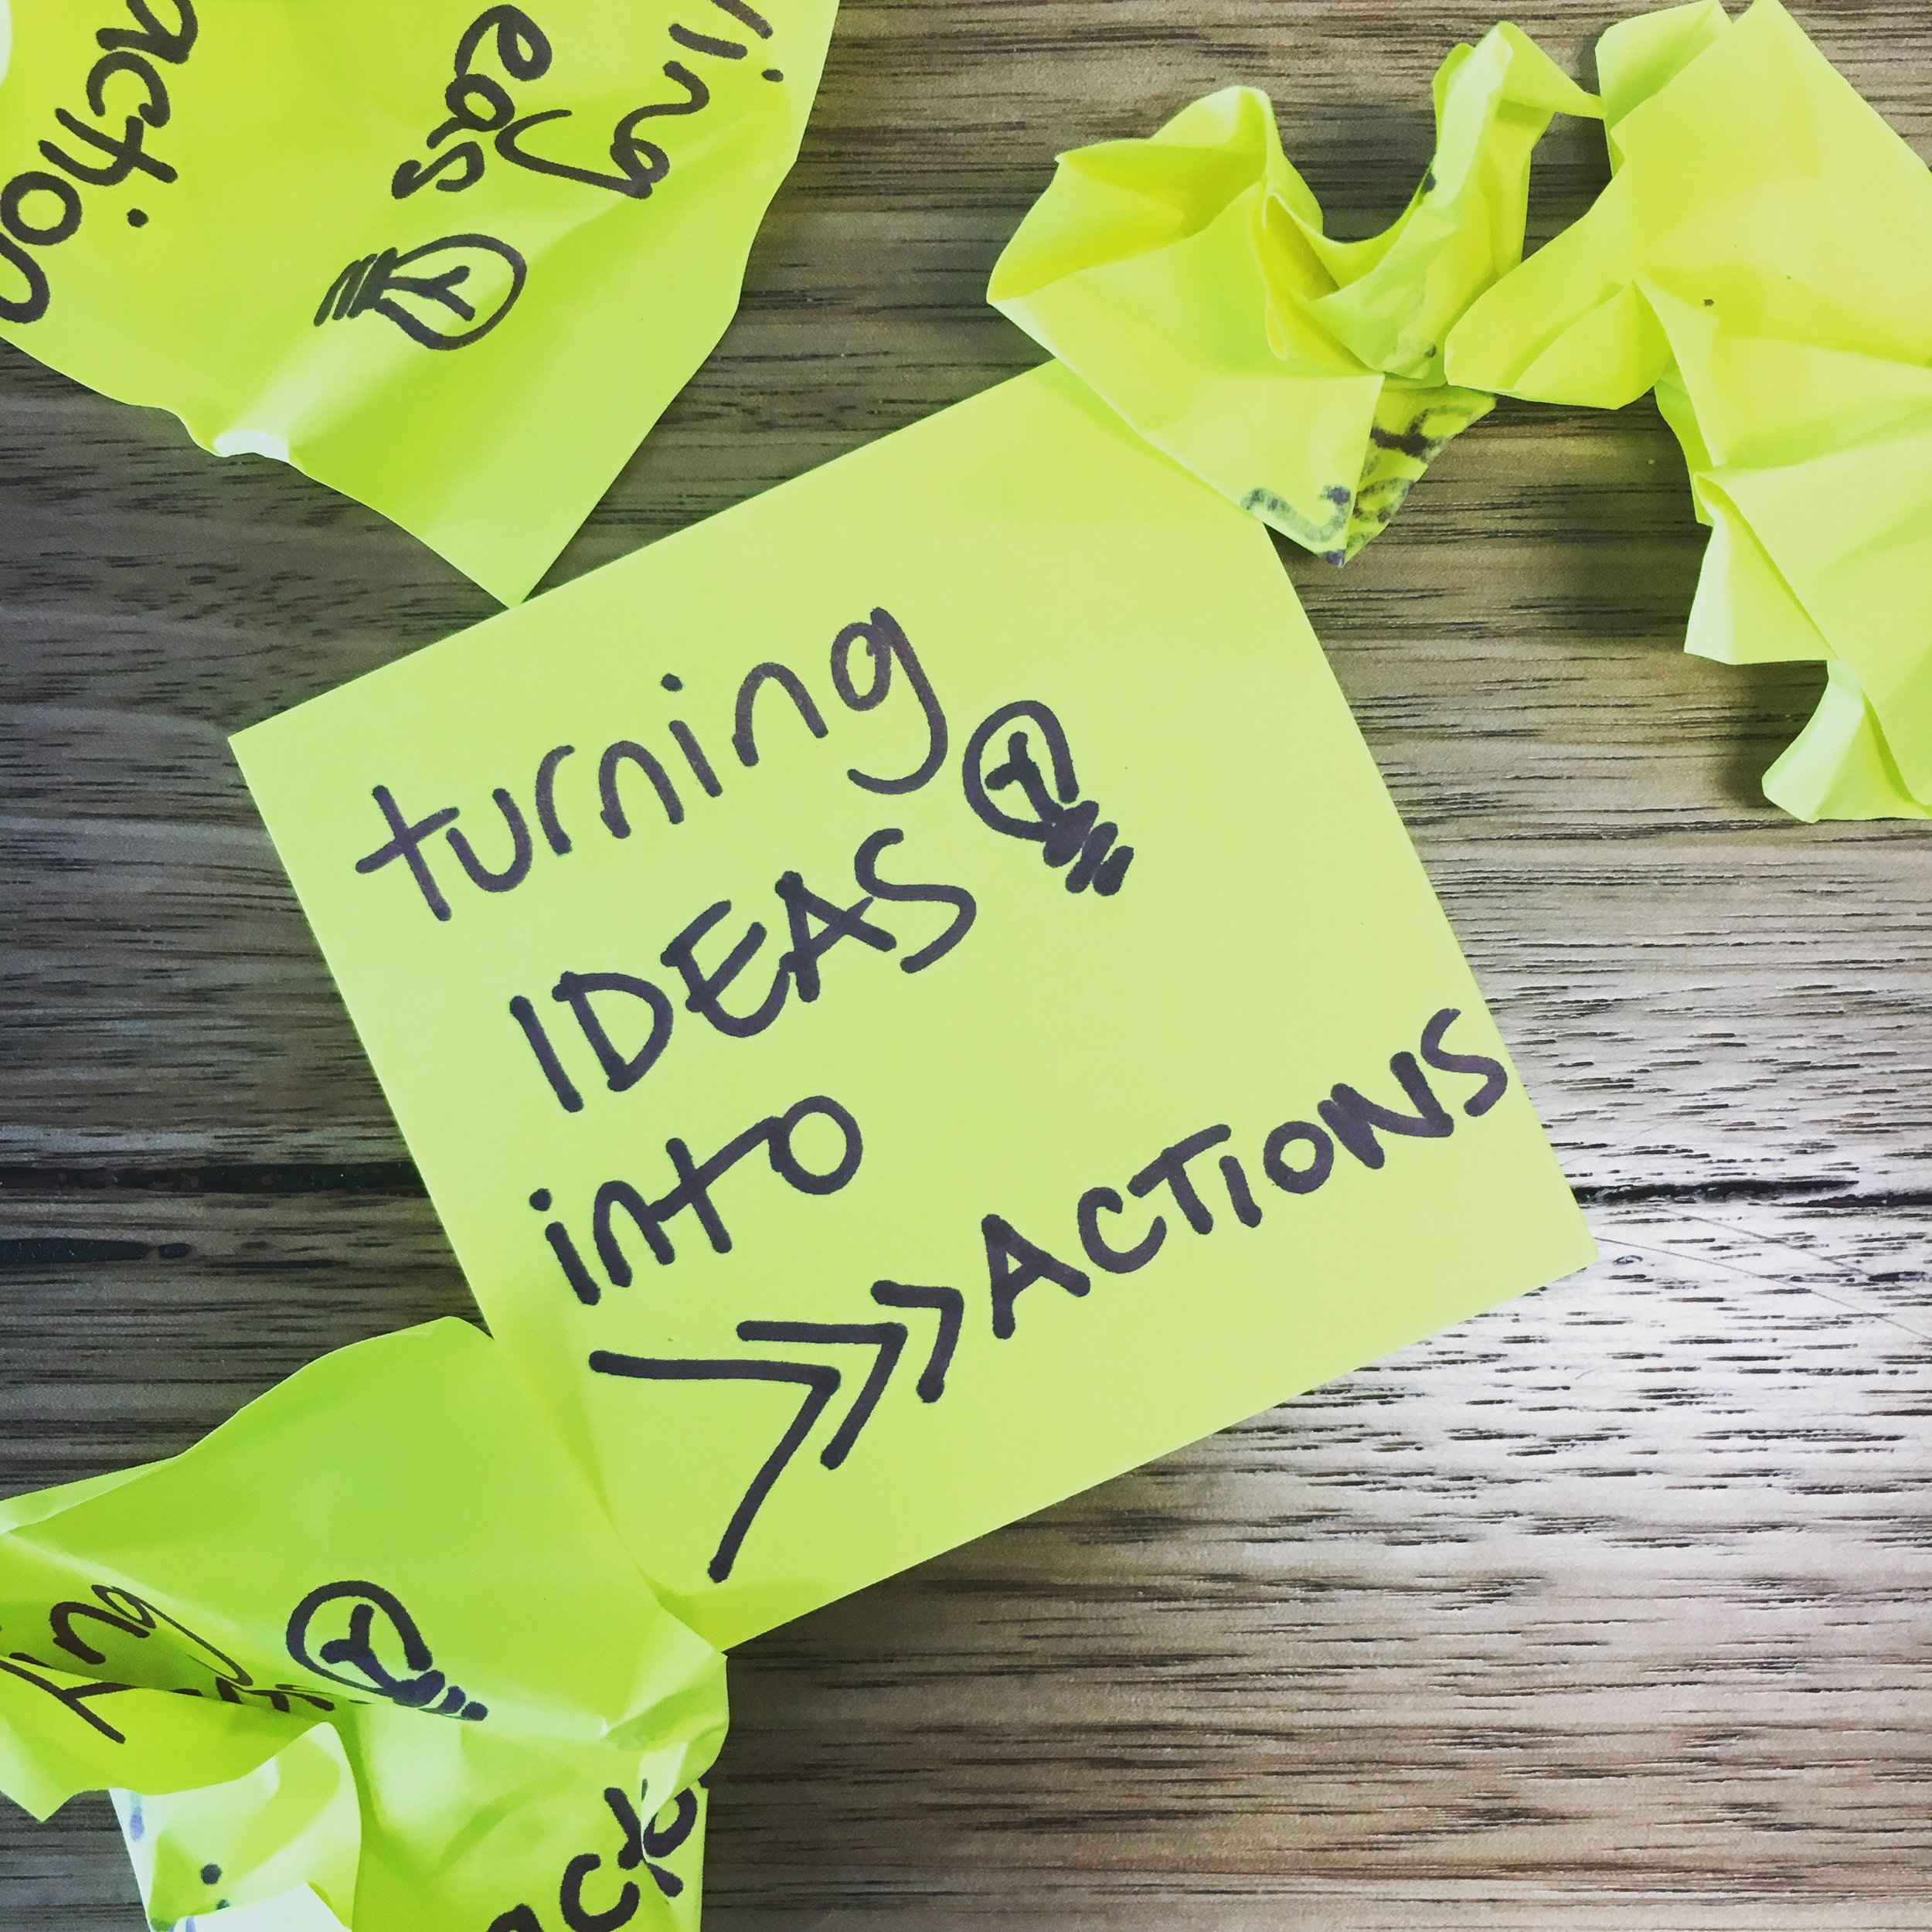 turning-ideas-into-actions.JPG